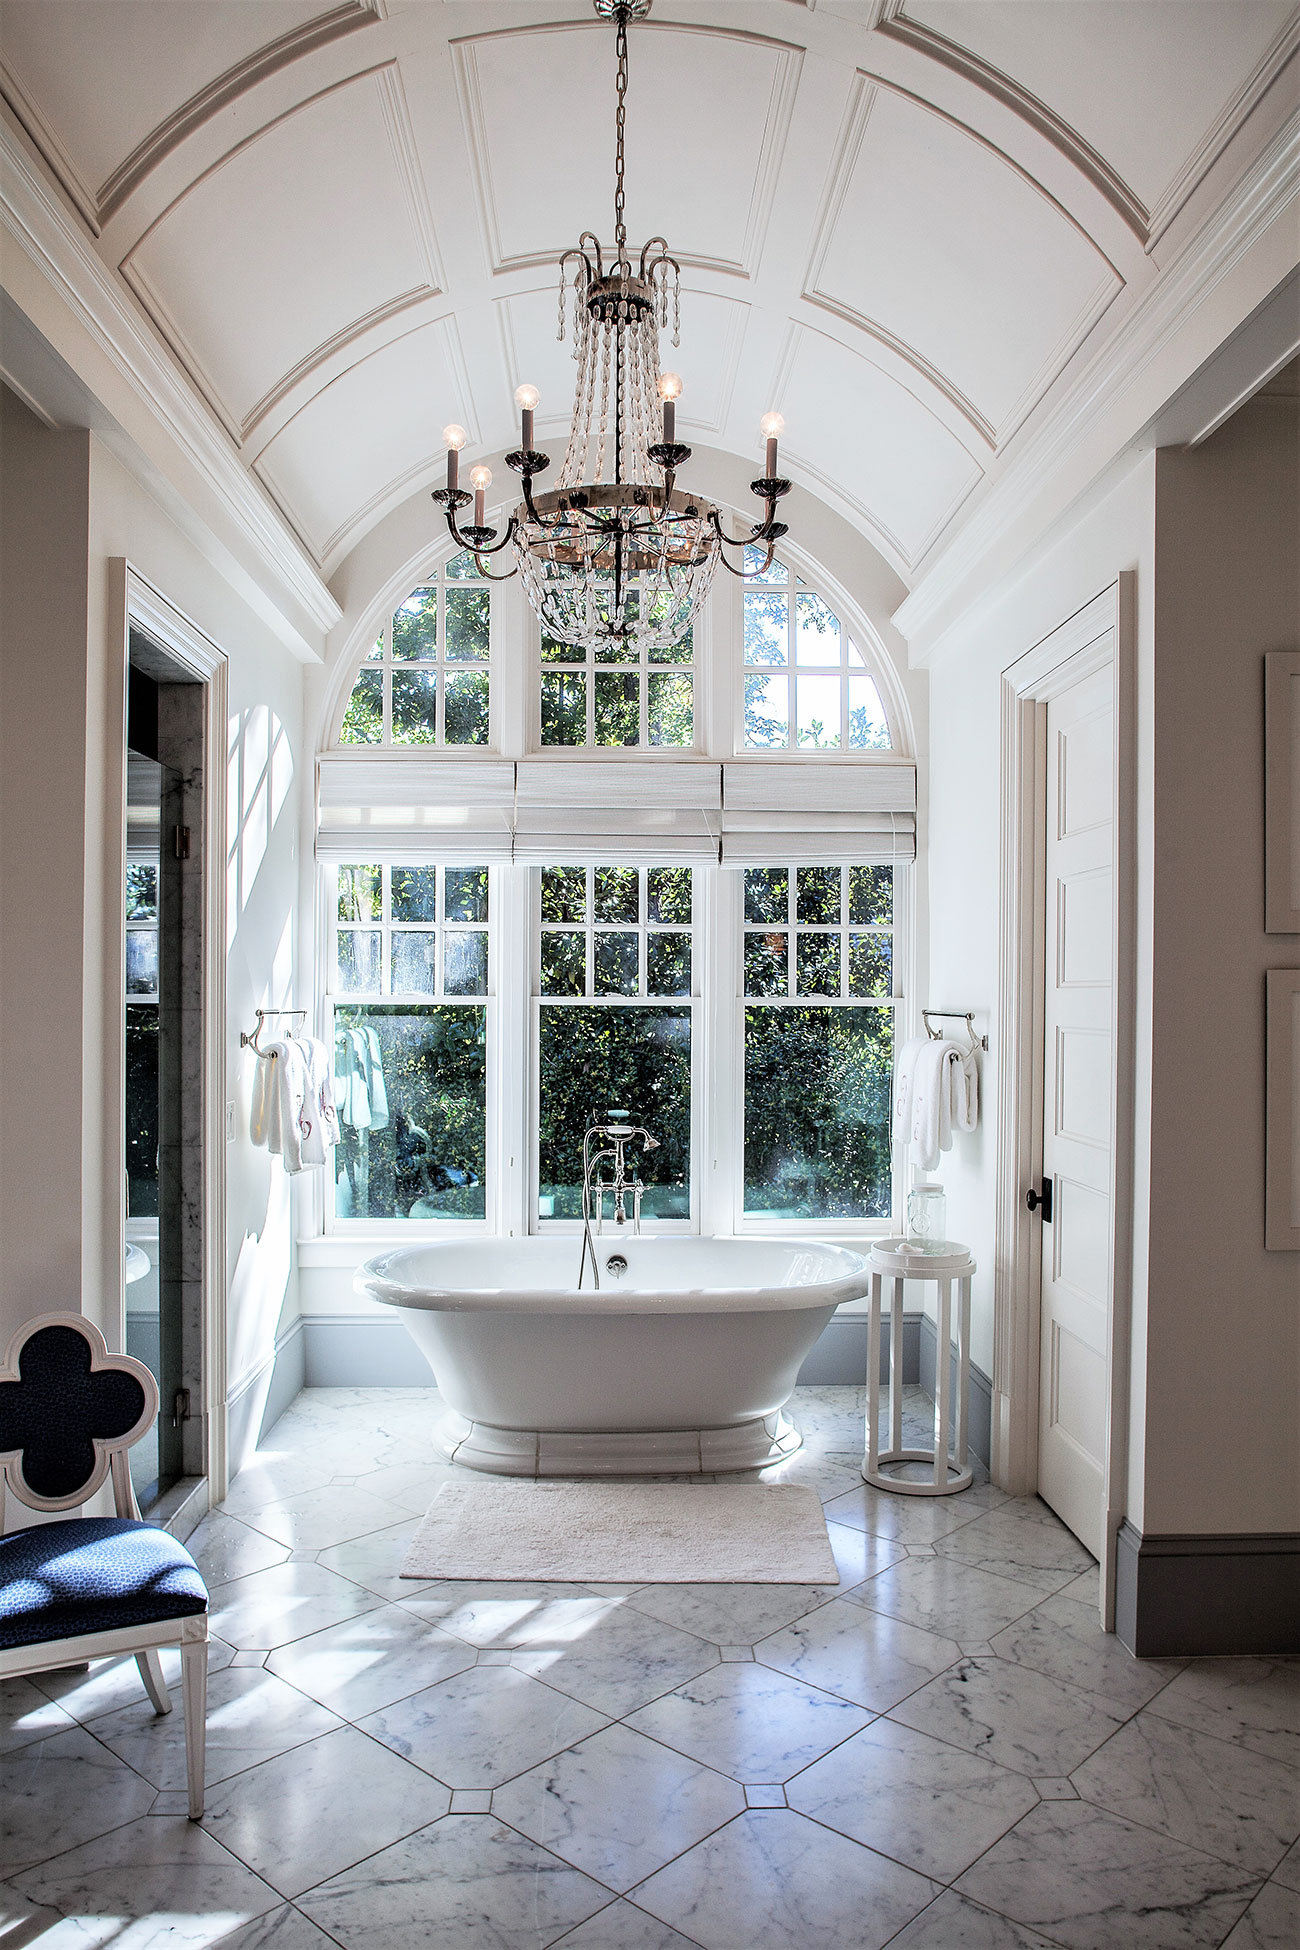 This spa-like master bath is a welcome amenity any day of the week.